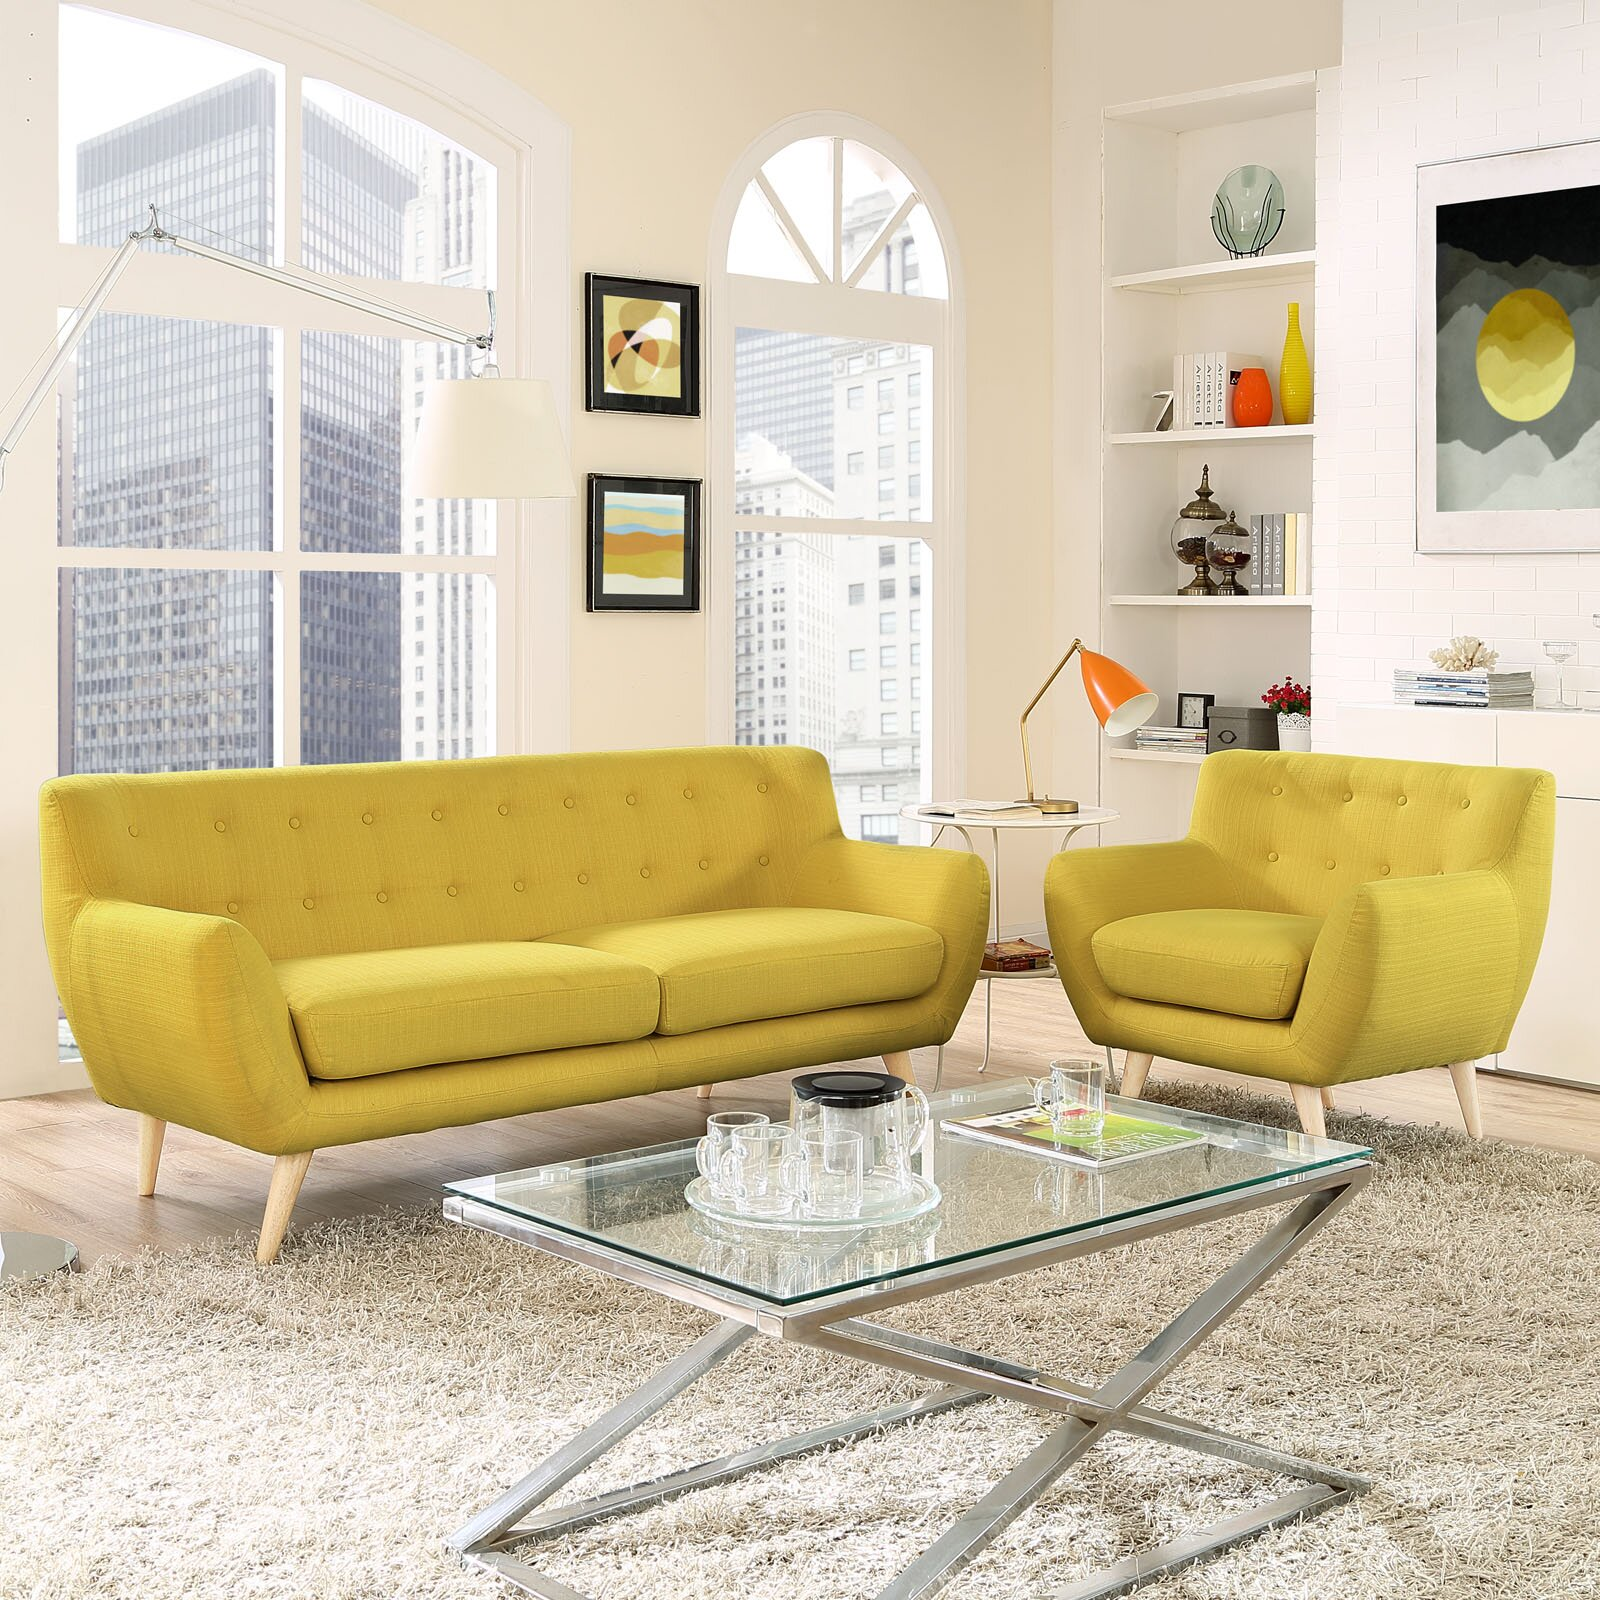 modway remark 2 piece living room set reviews wayfair